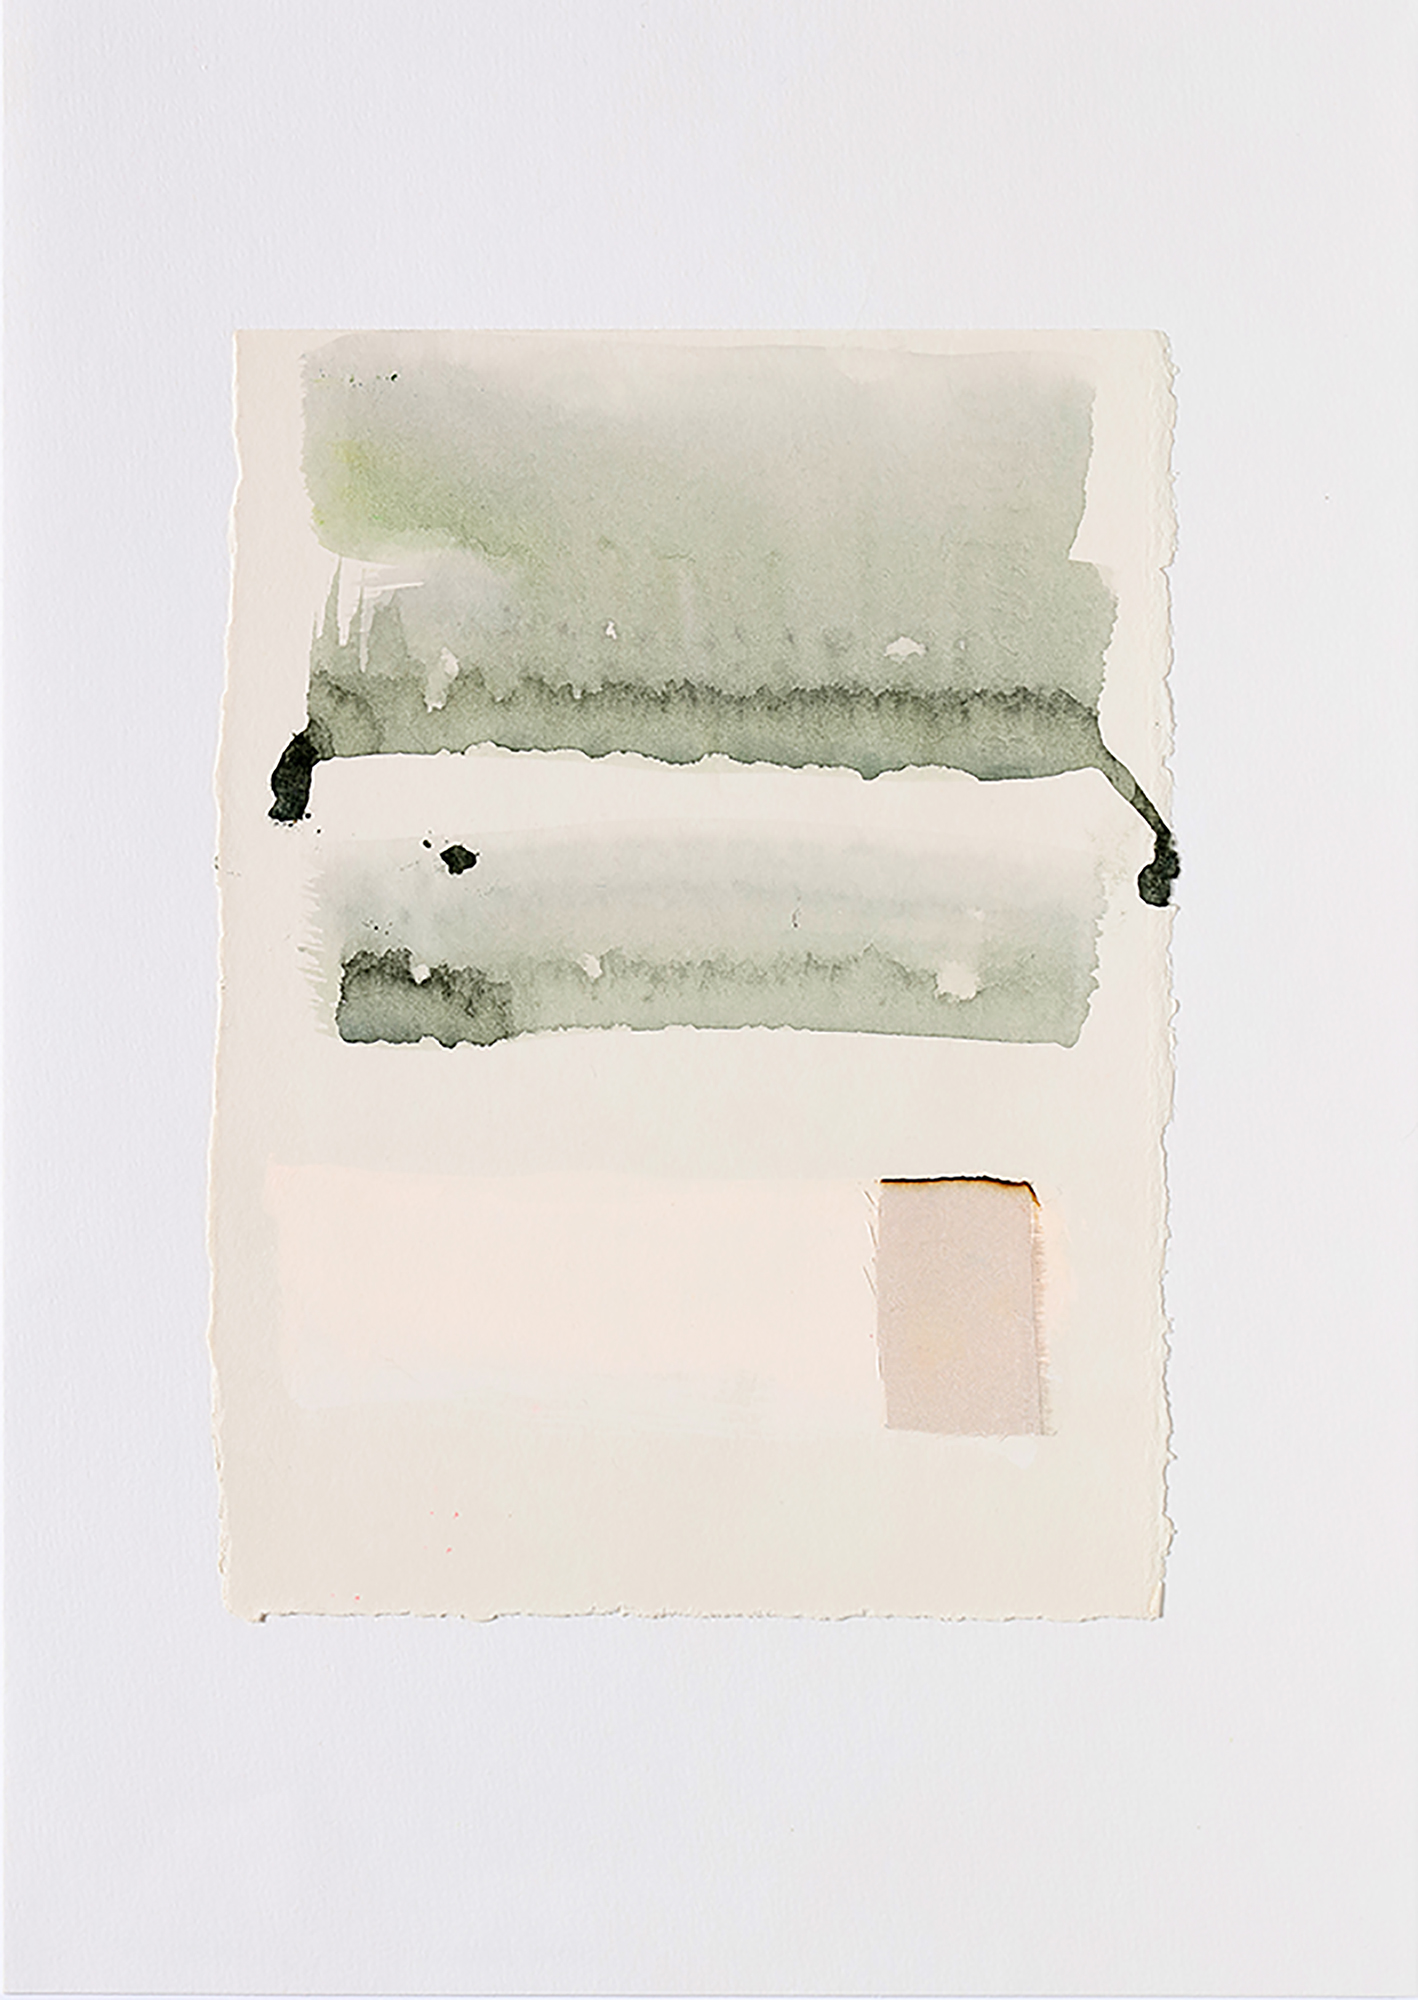 Jane Bustin, Still Water (2018). Acrylic, saltwater, beetroot and silk on paper